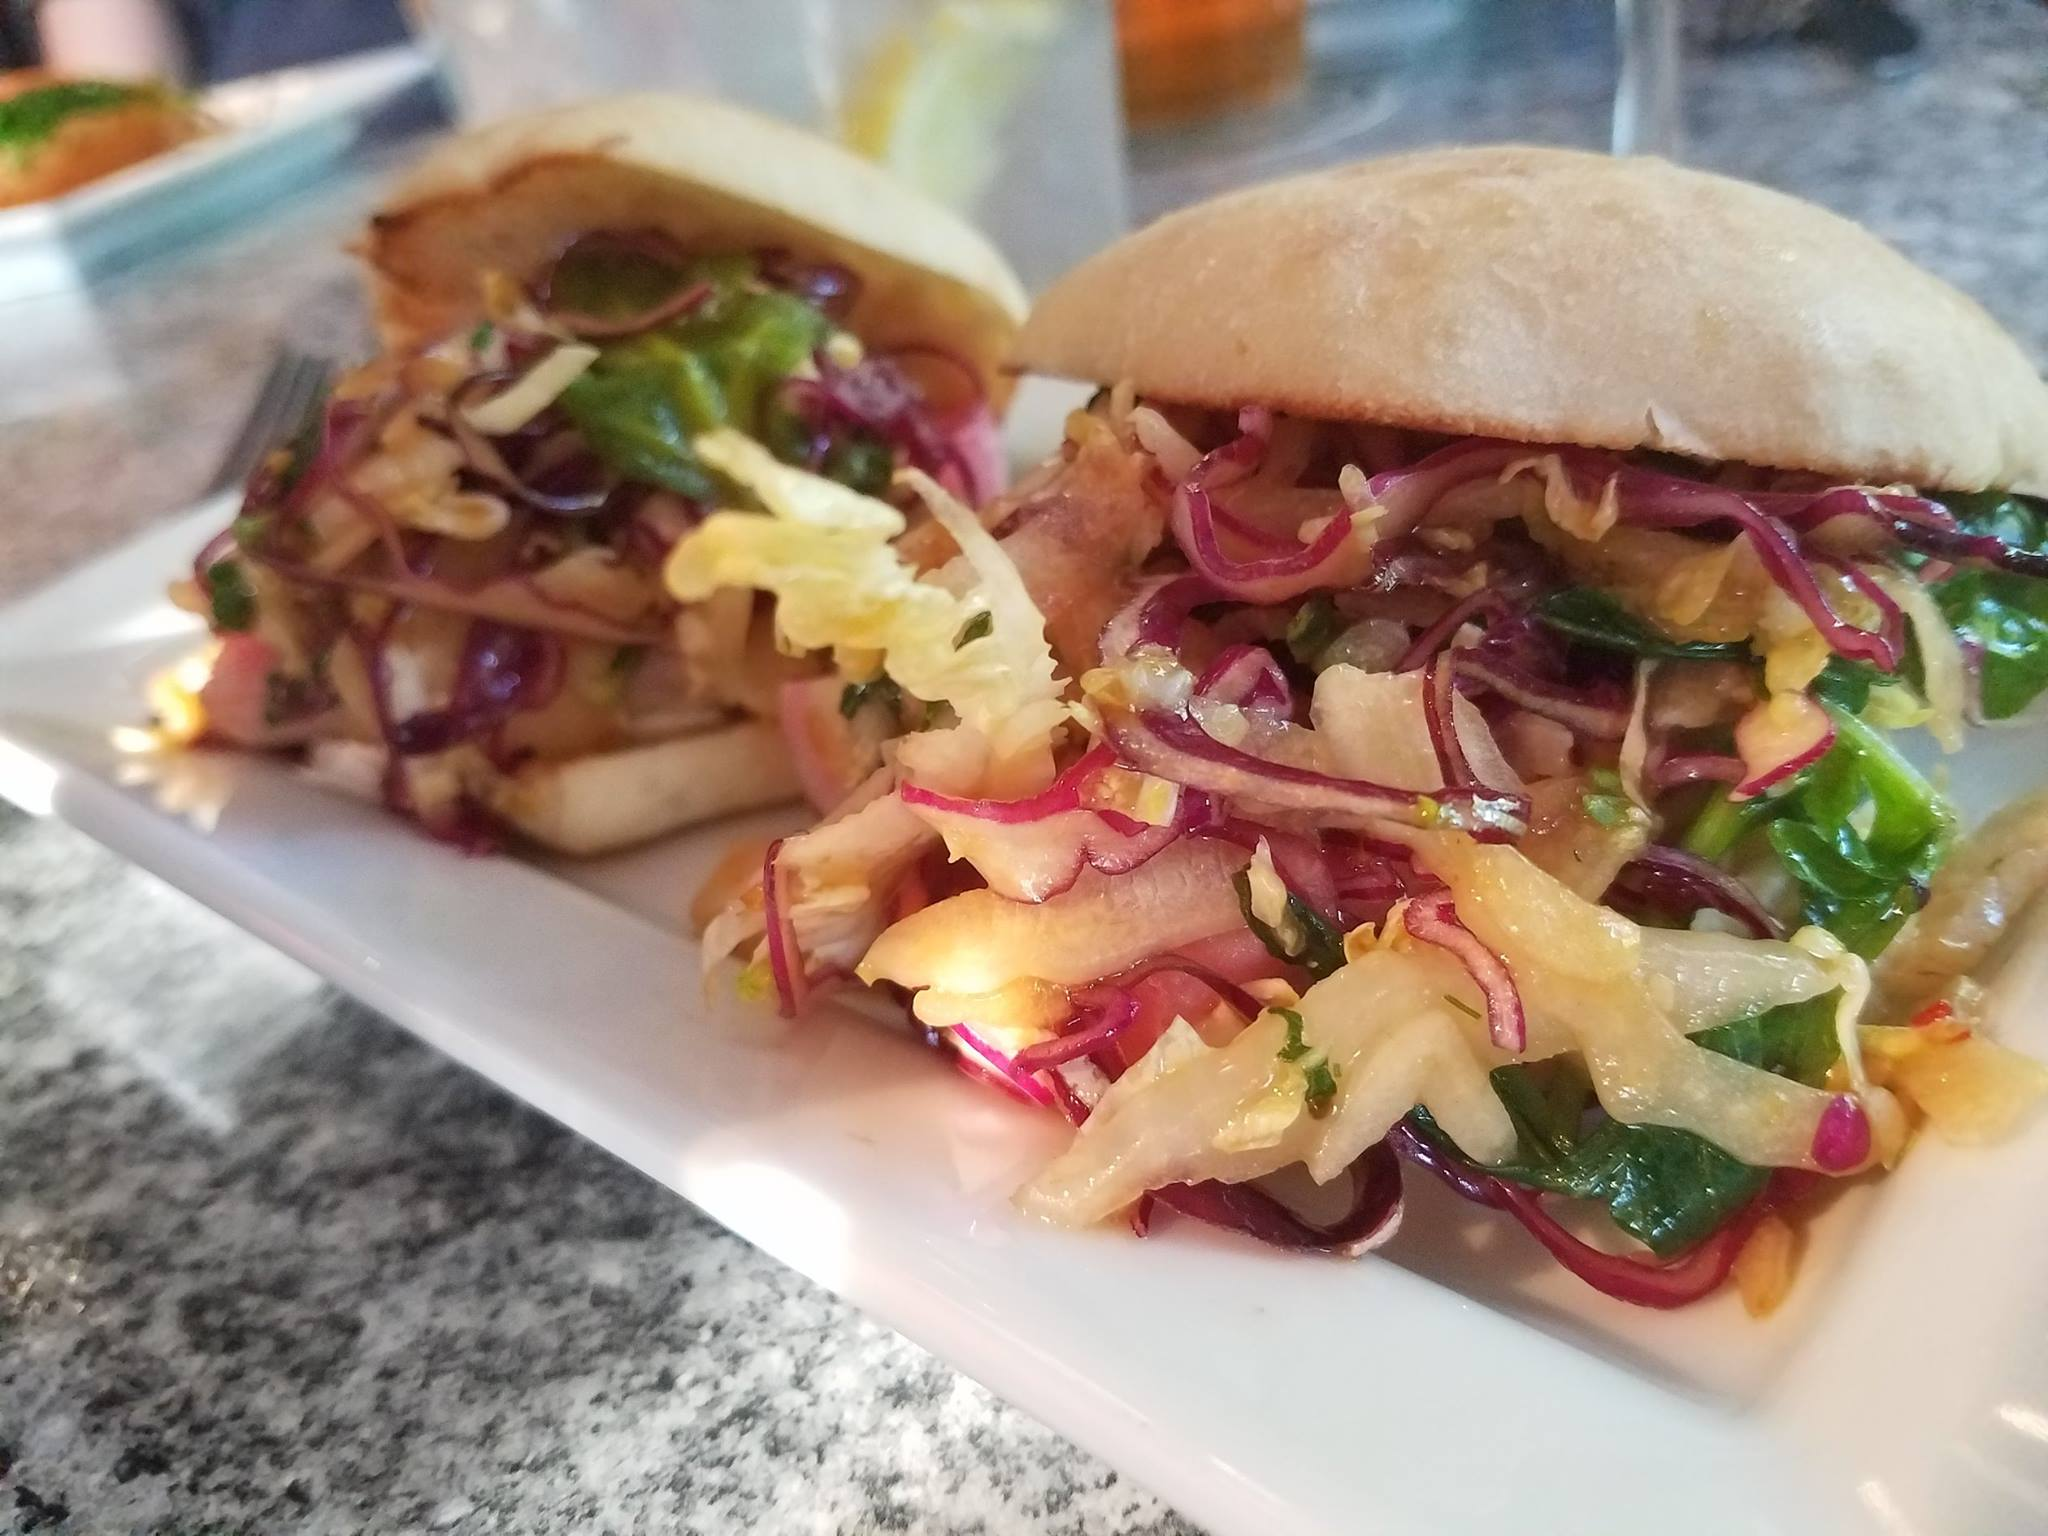 Two buns filled with heaping sauteed vegetbles and srispy slaw served on a white plate